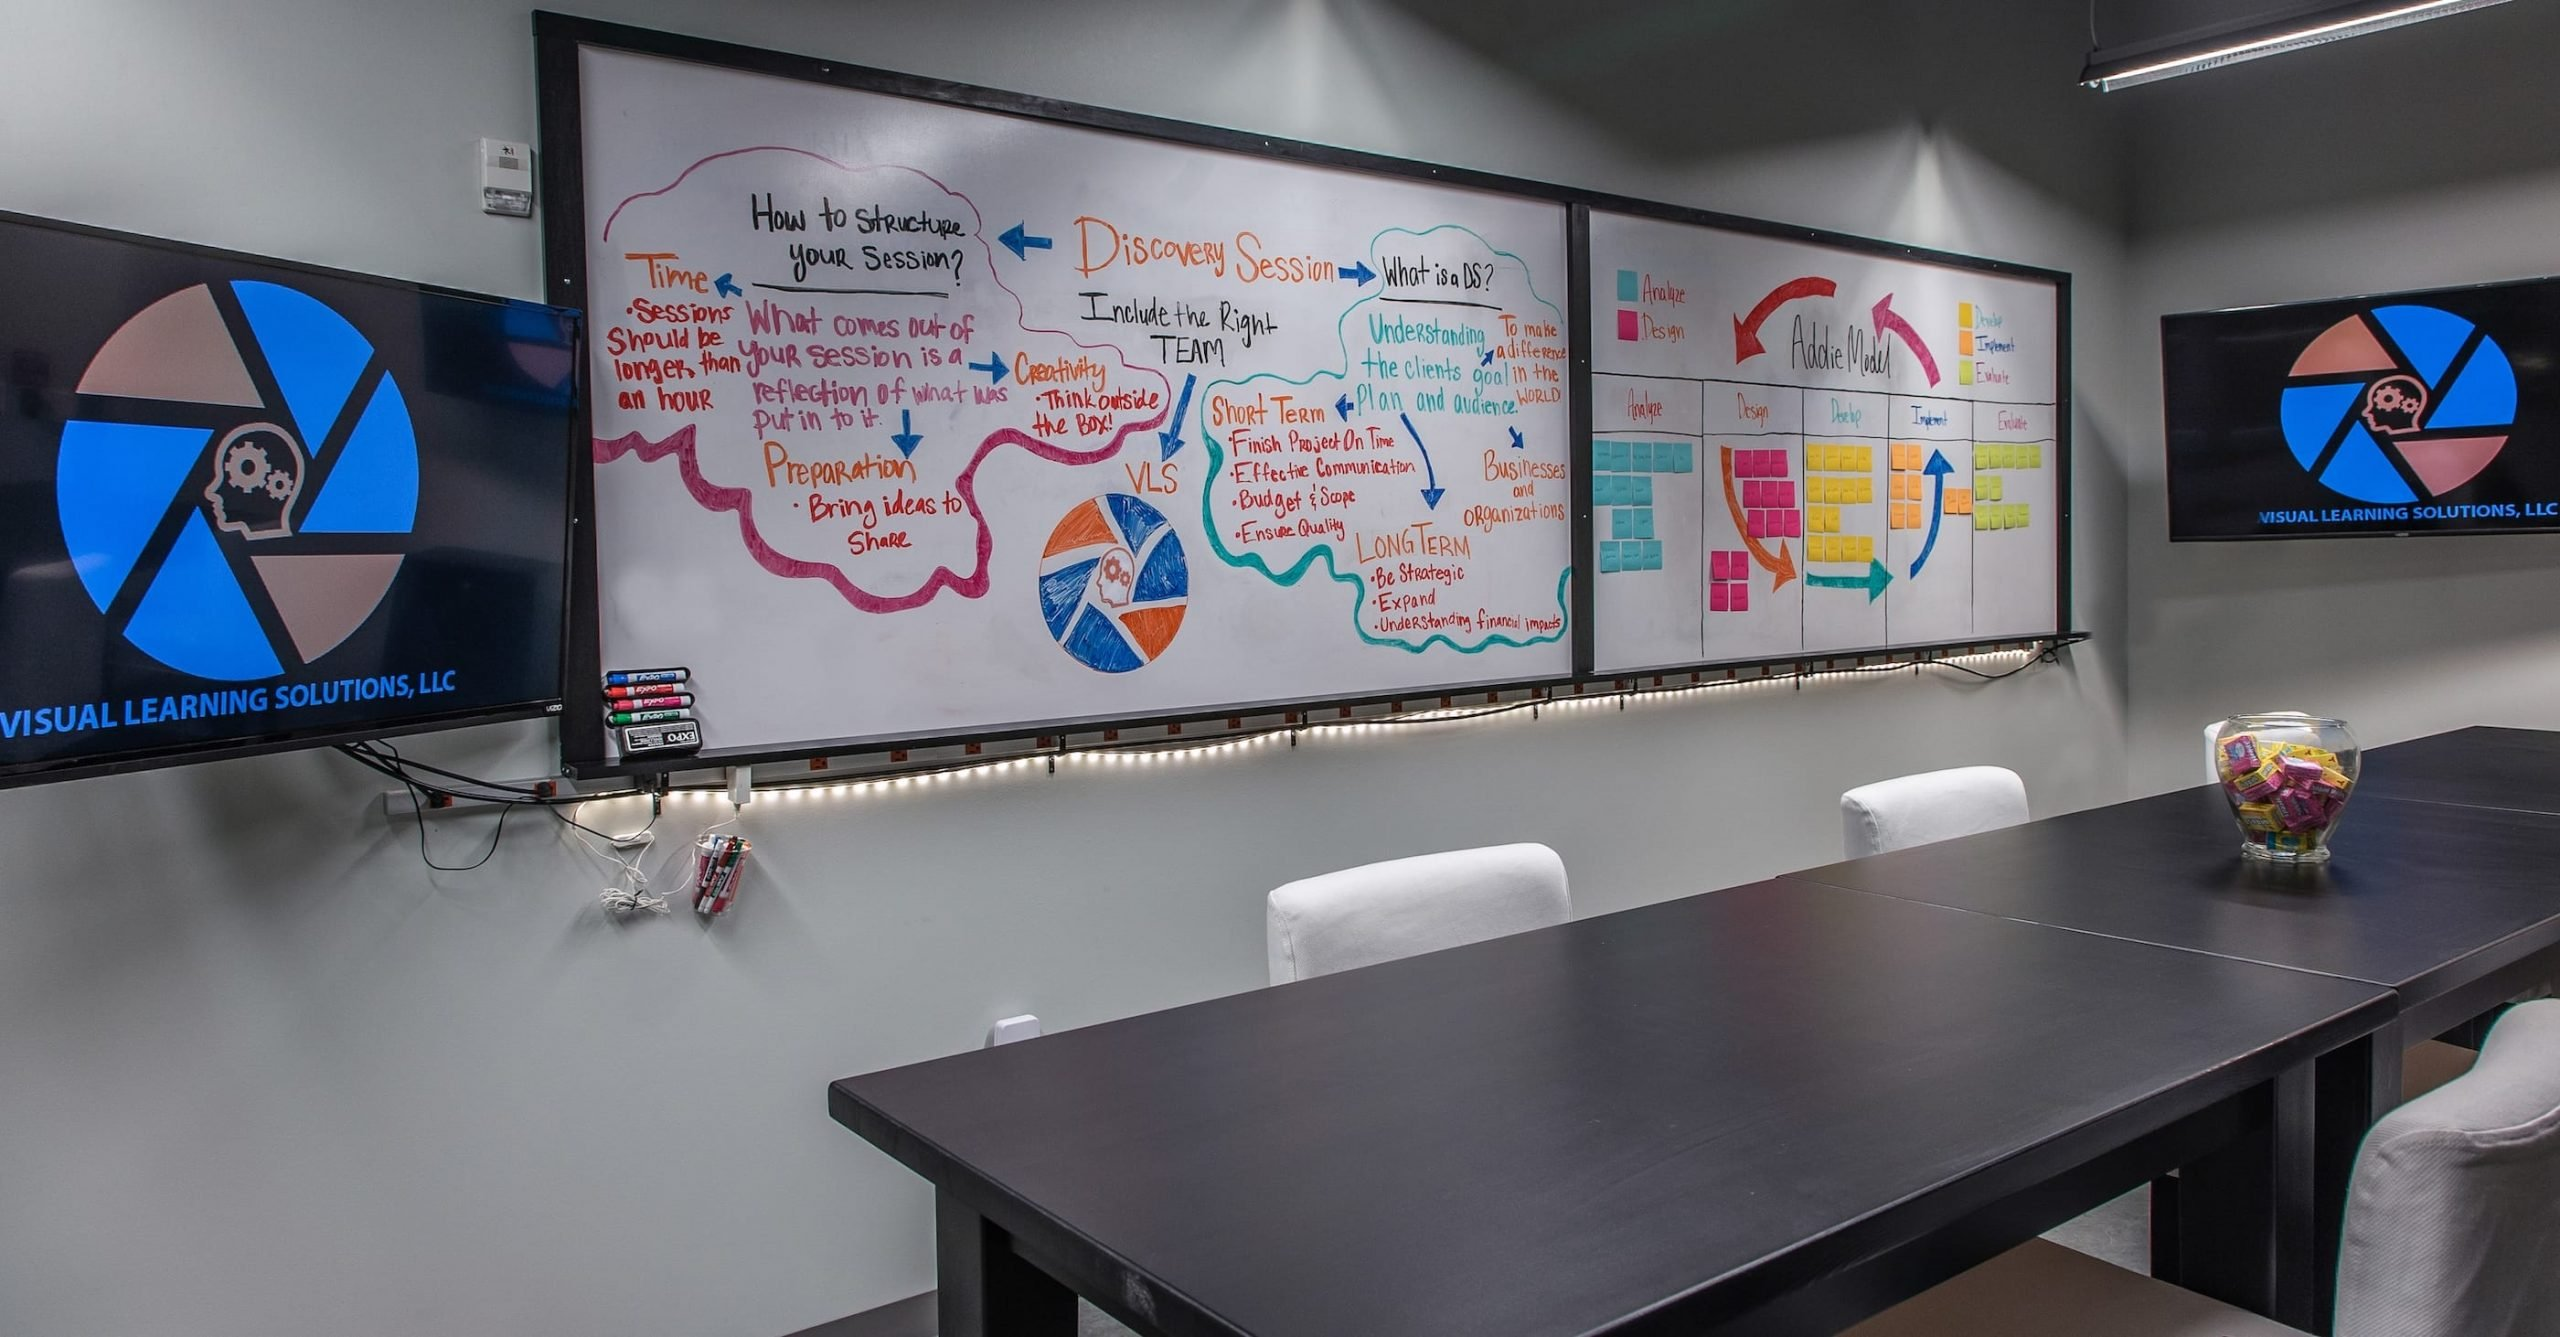 visual learning solutions Discovery Room fixed